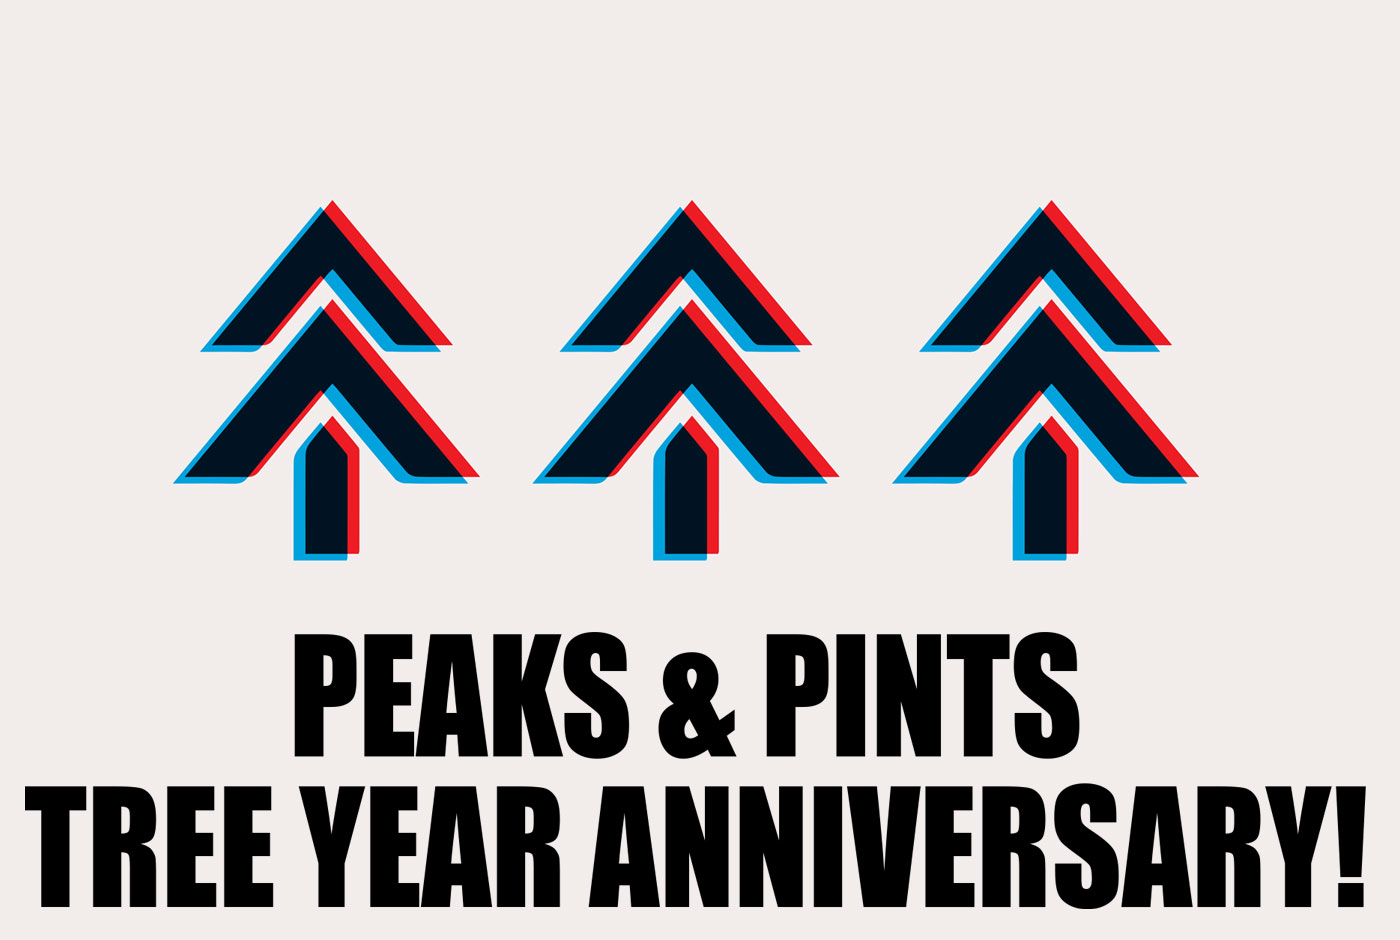 Peaks-and-Pints-Tree-Year-Anniversary-calendar